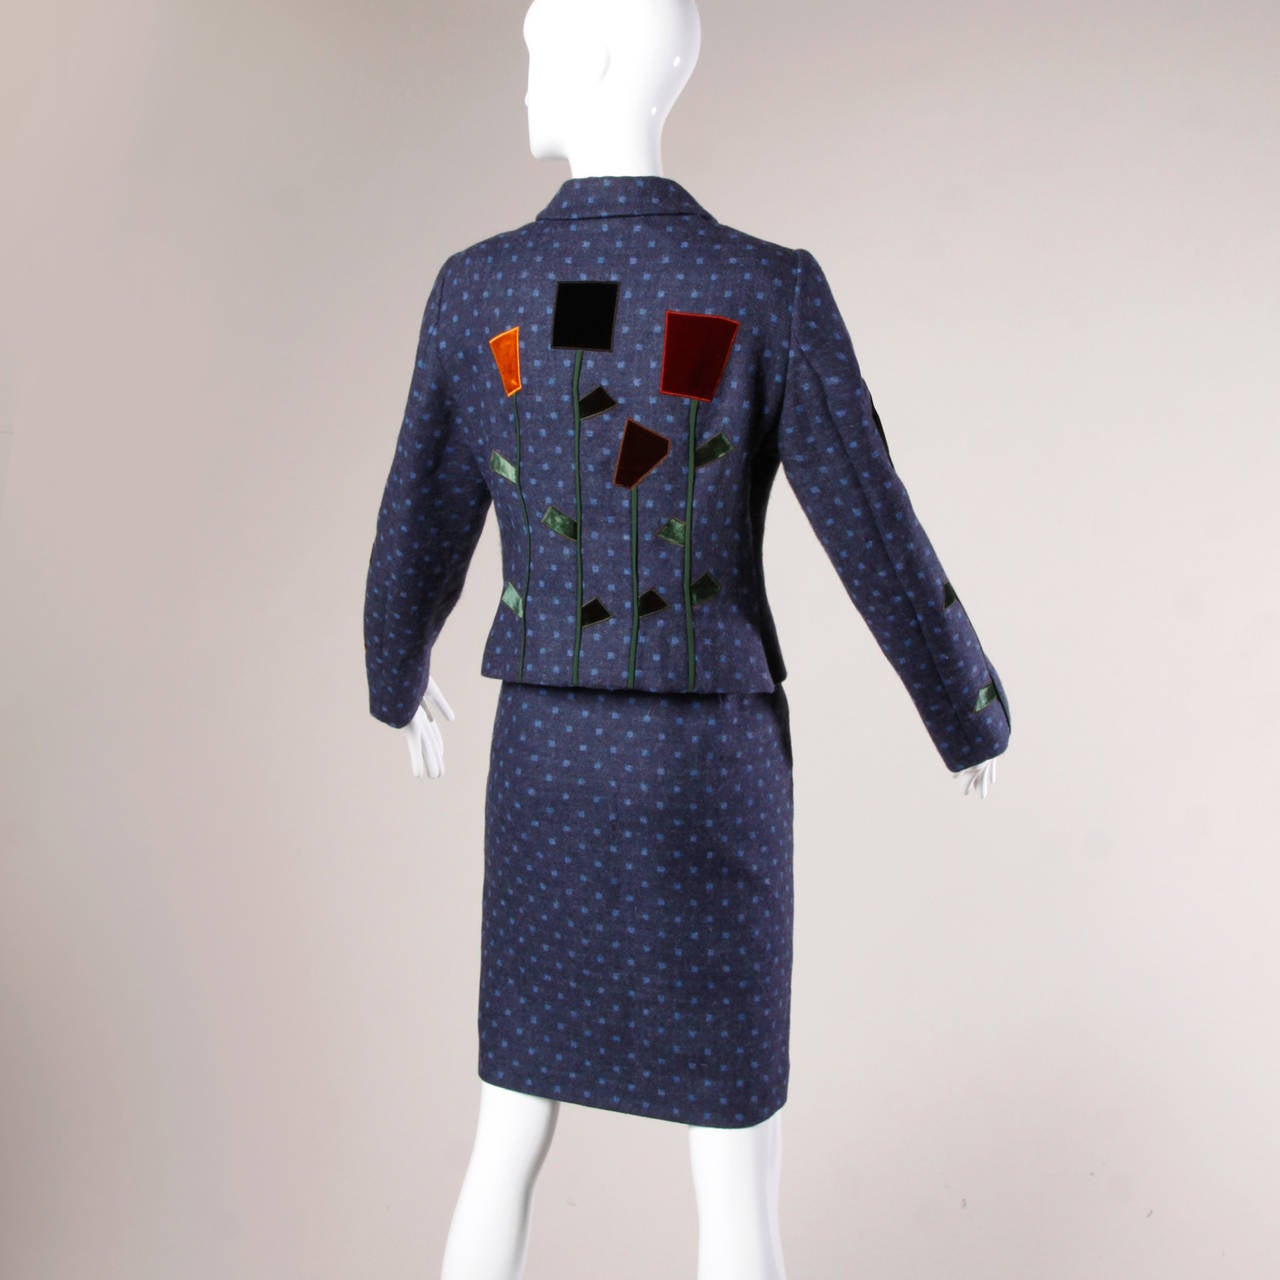 Moschino Vintage 90s Polka Dot Patchwork Skirt + Jacket Suit Ensemble 2